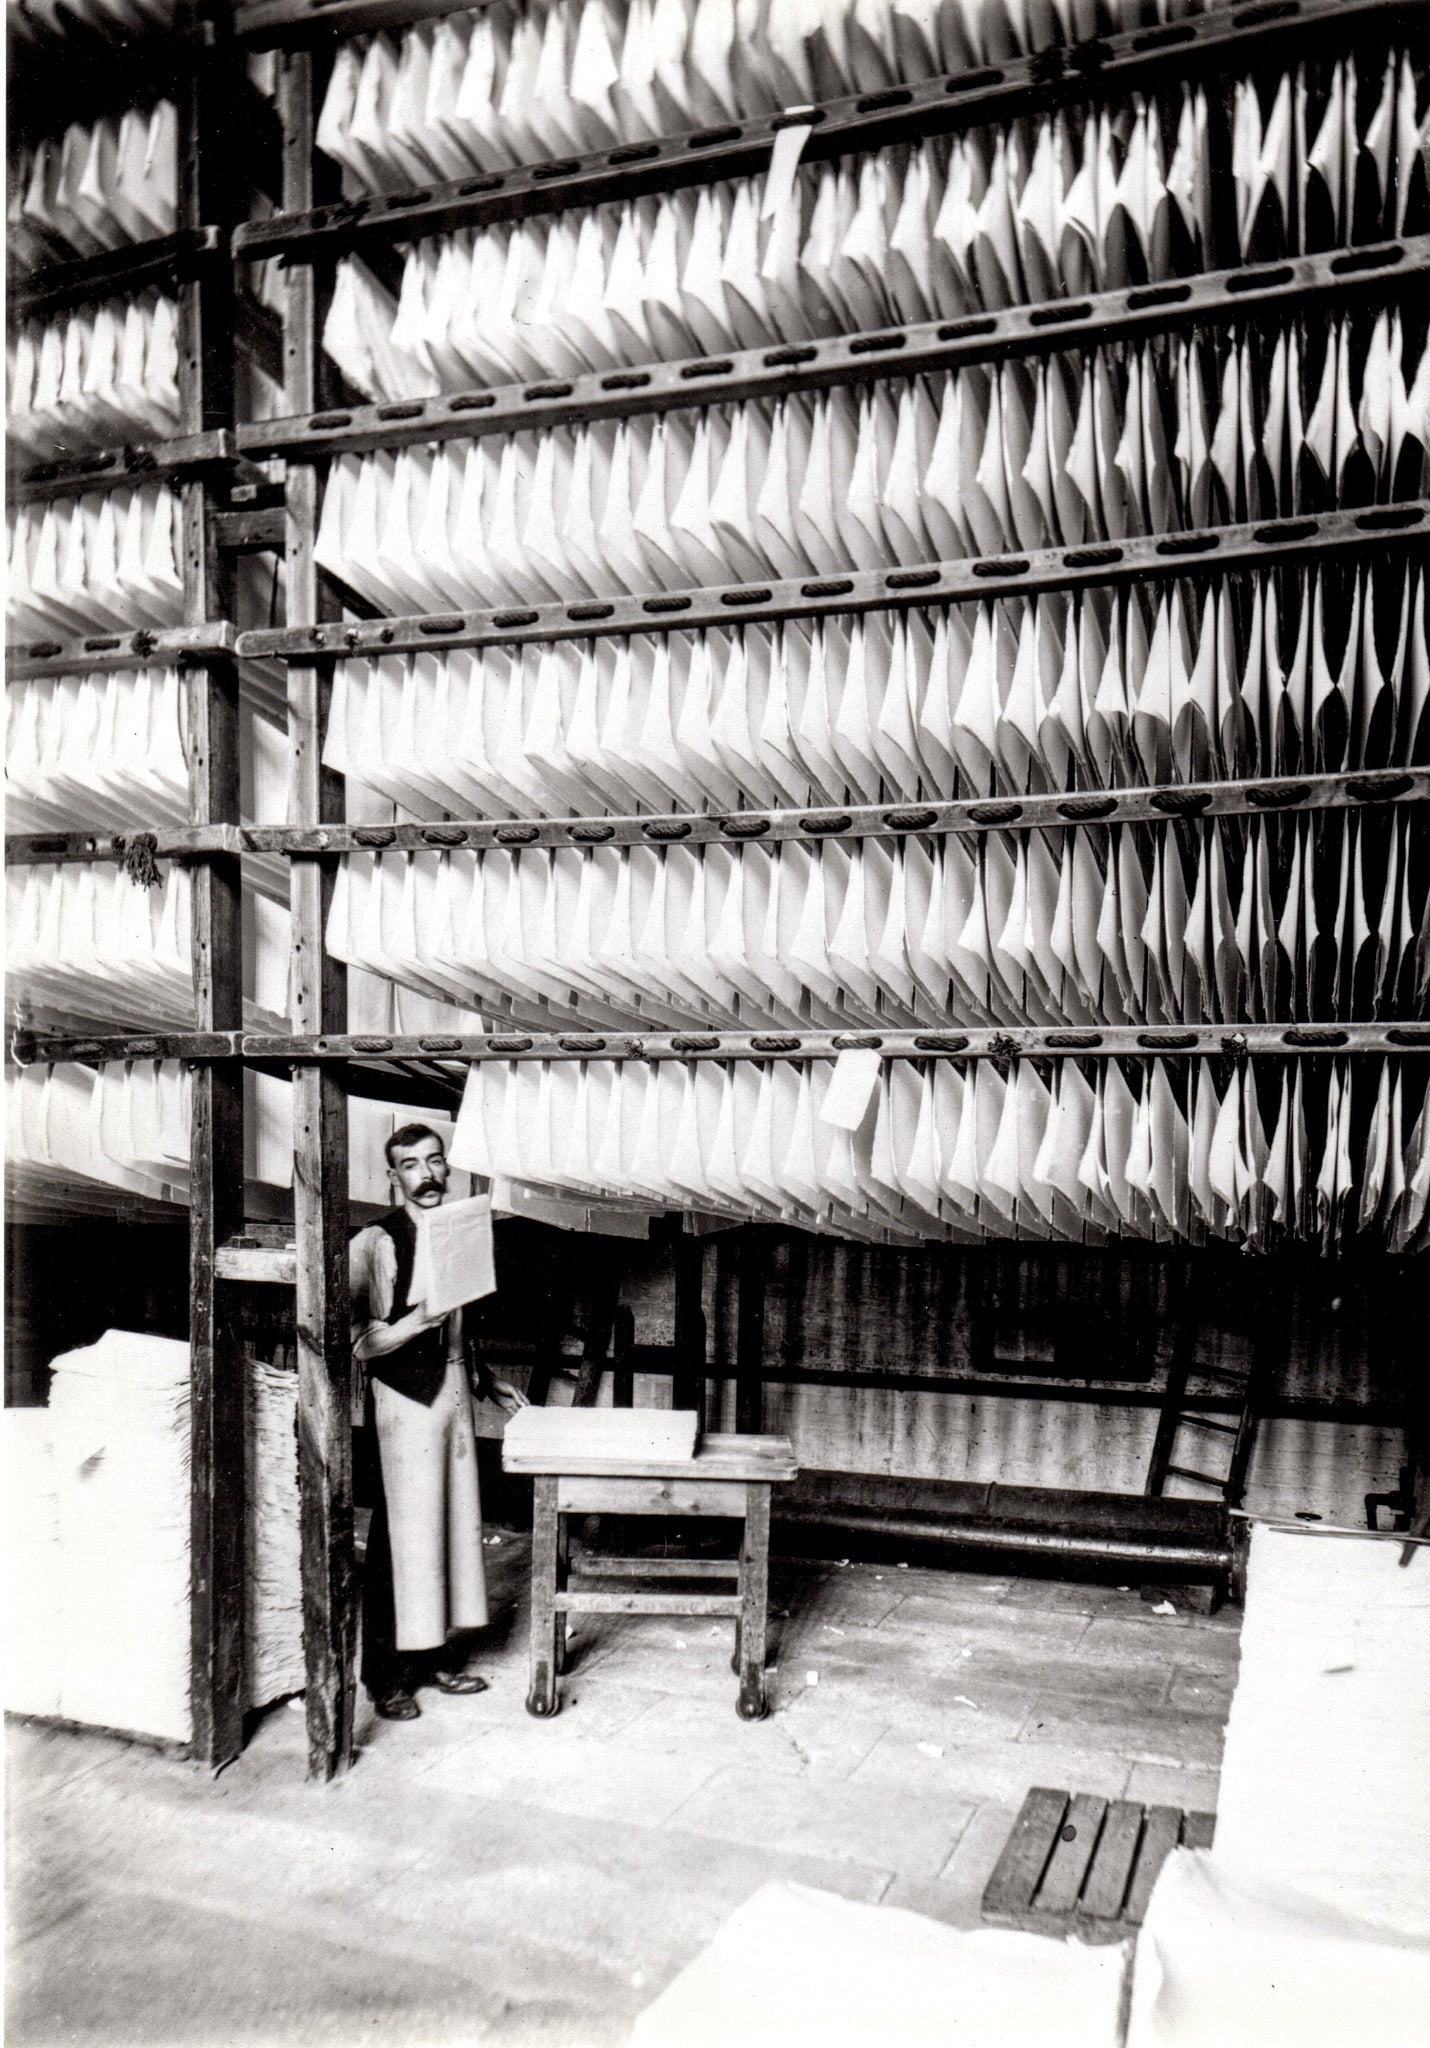 Drying Paper at Whatman's Sprinfield Mill